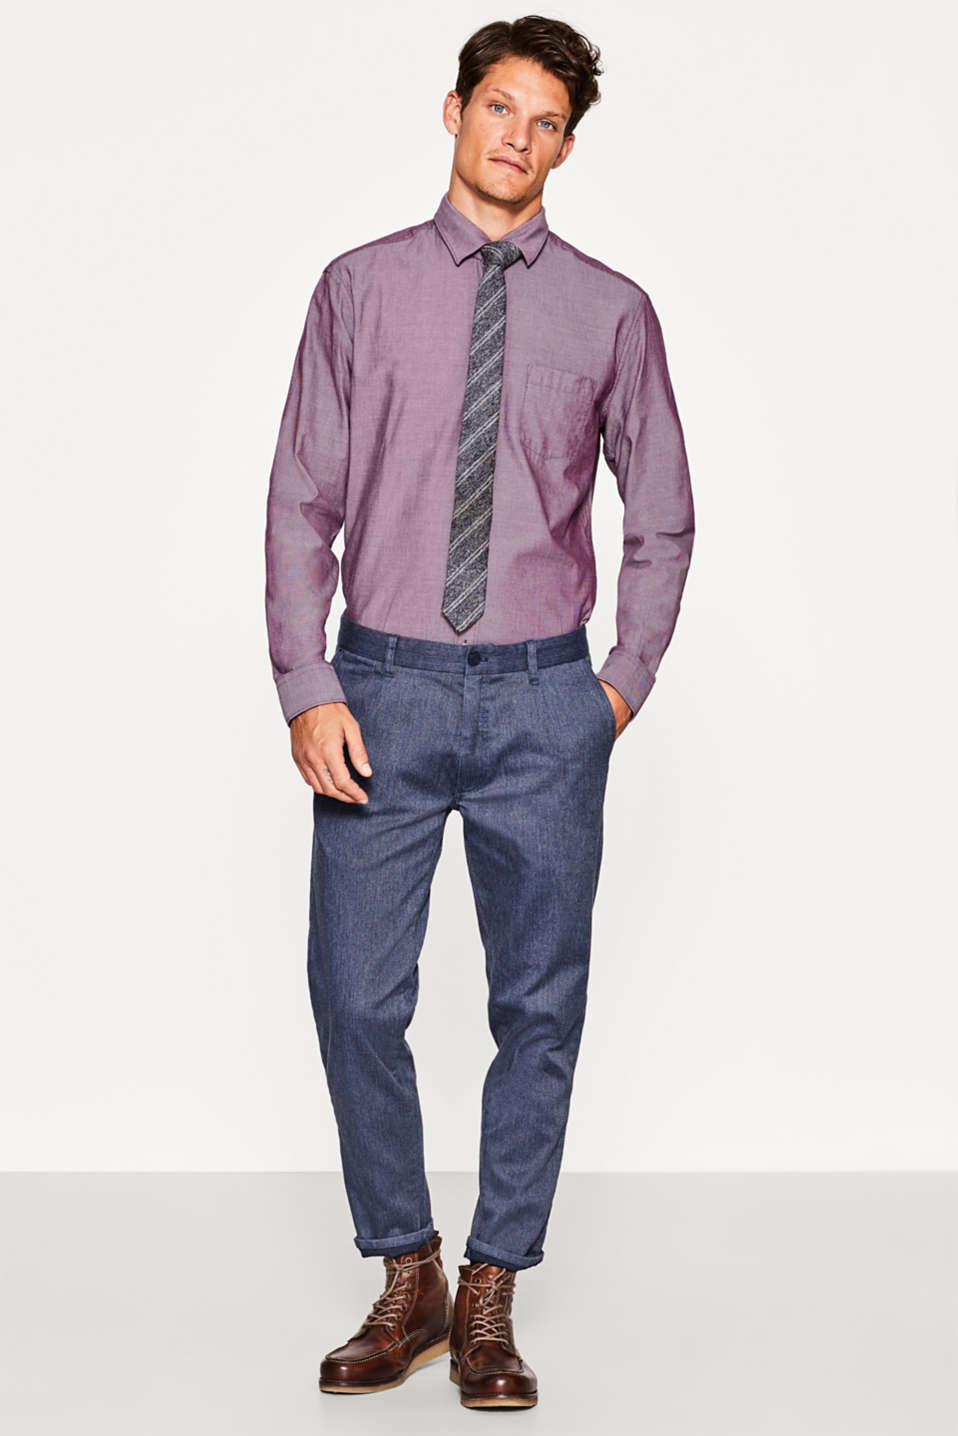 Esprit - Oxford shirt in 100% cotton